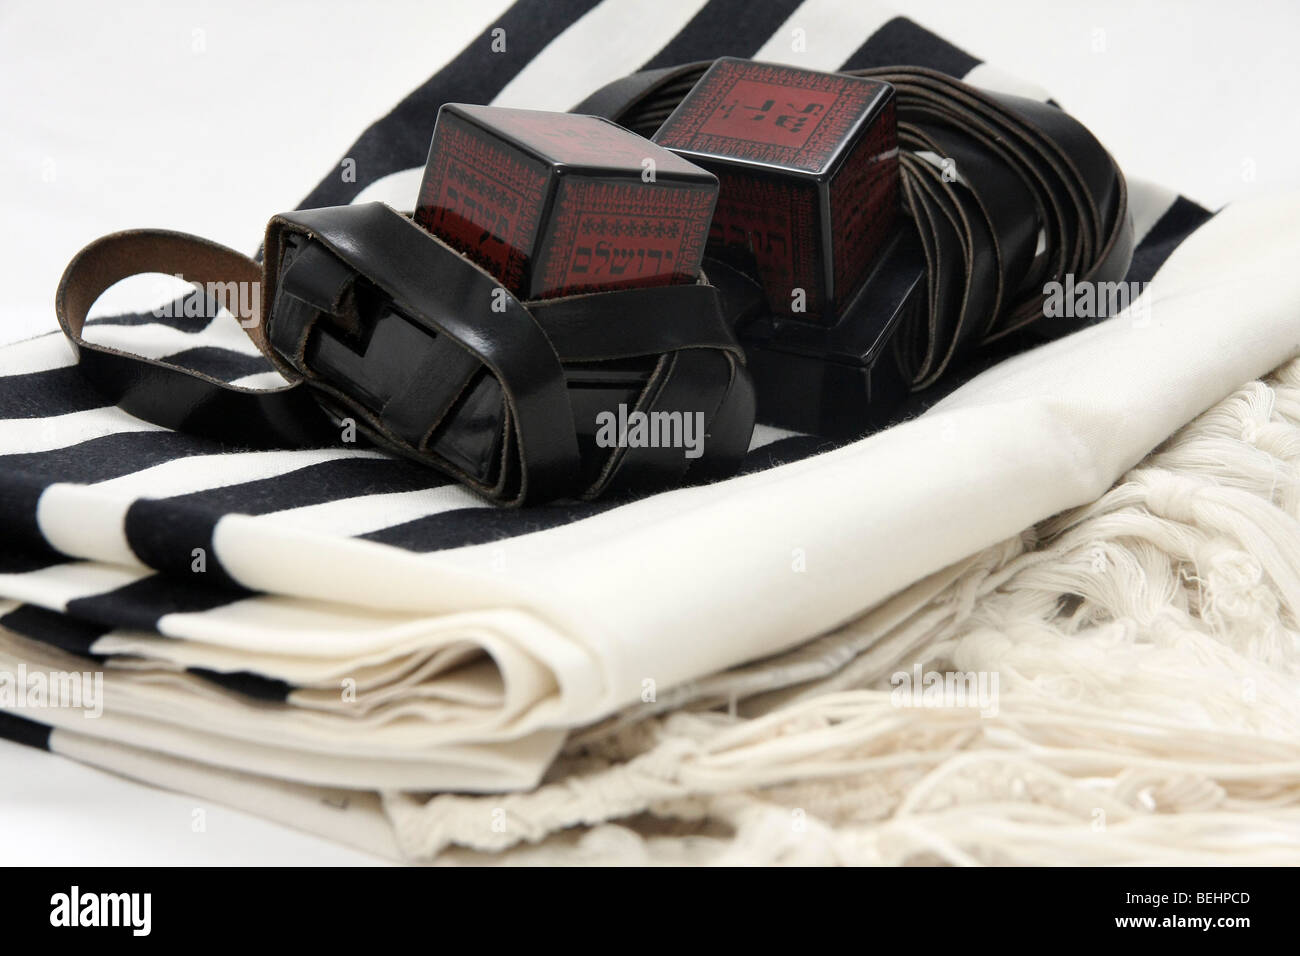 Cutout of Tifillin and Talit on white background - Stock Image